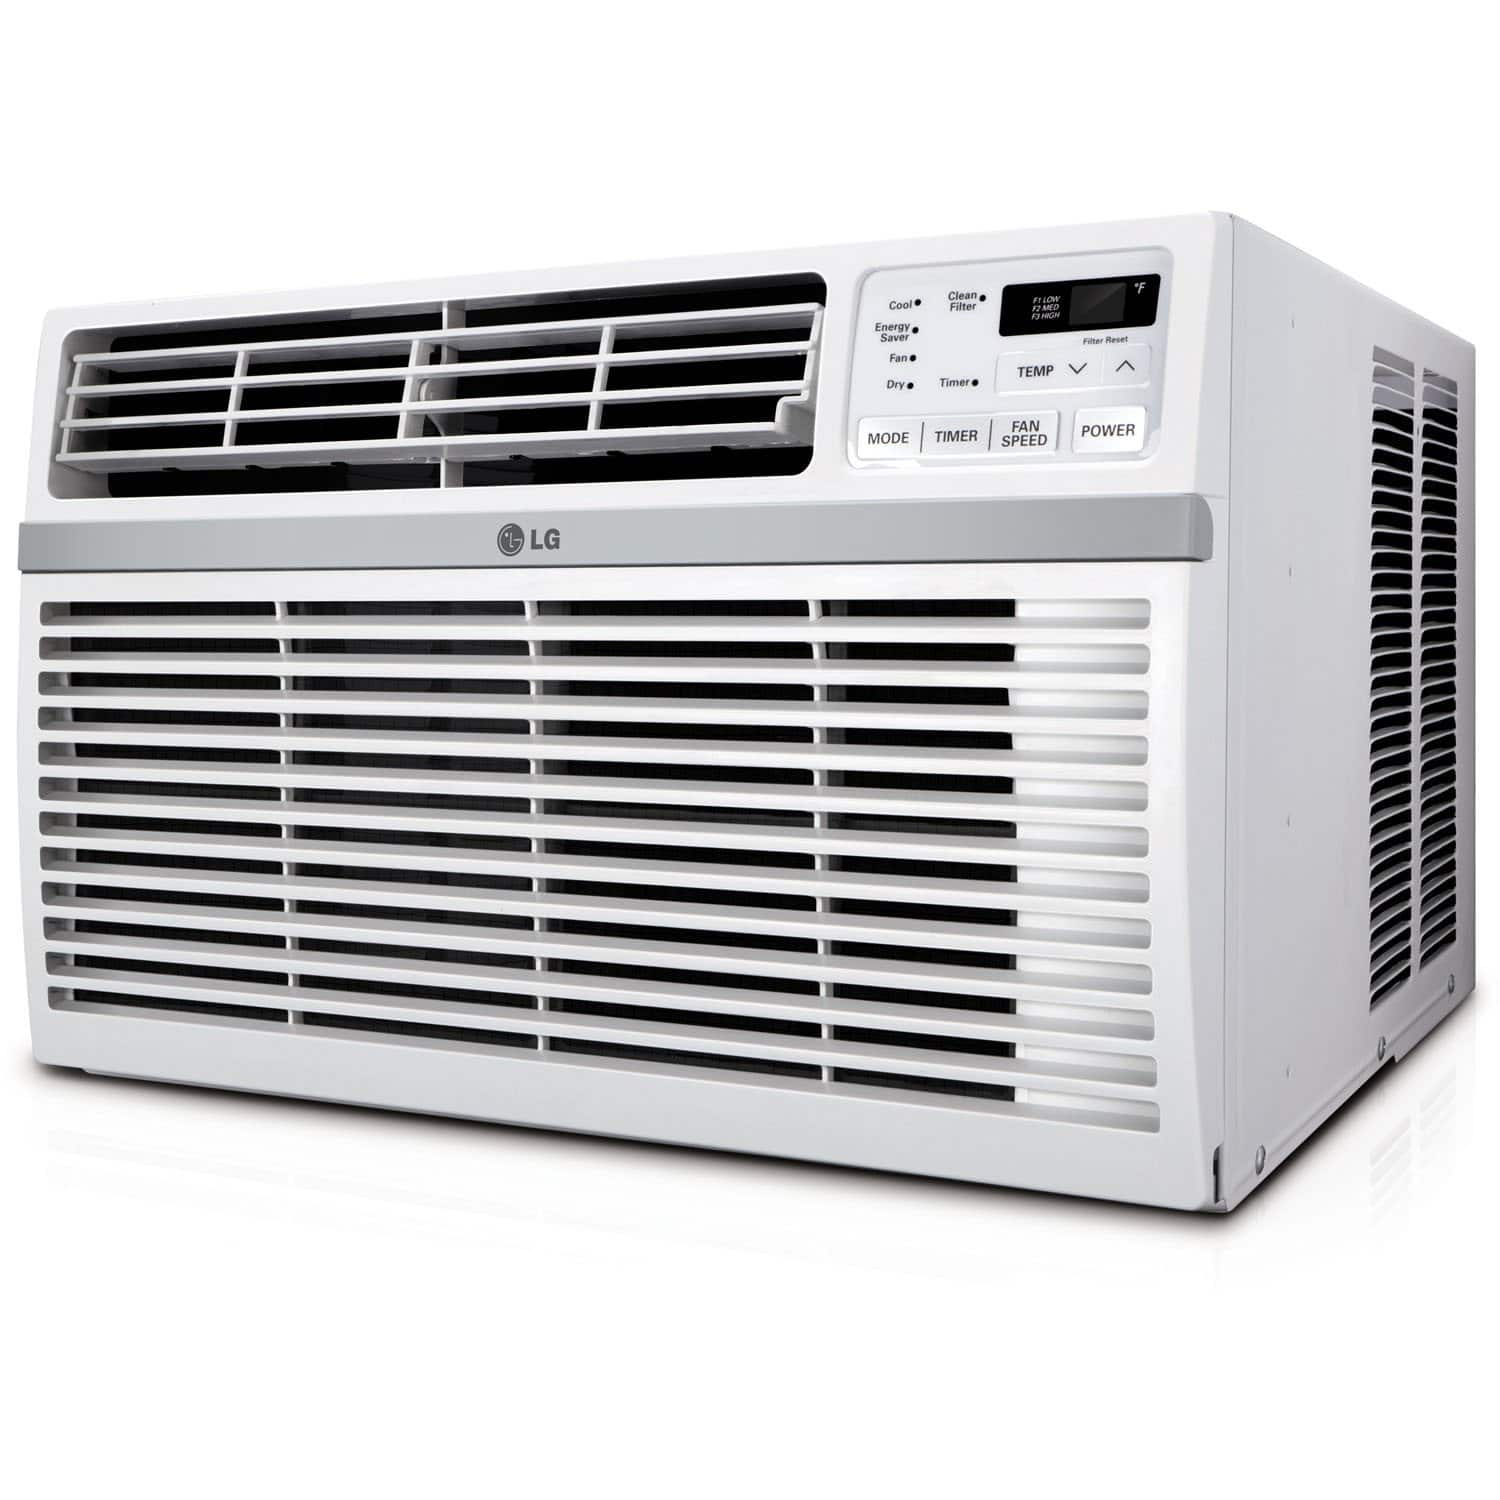 Amazon & Frys  has LG  8,000 BTU 115V Window-Mounted Air Conditioner with Remote Control  for $173 Free shipping